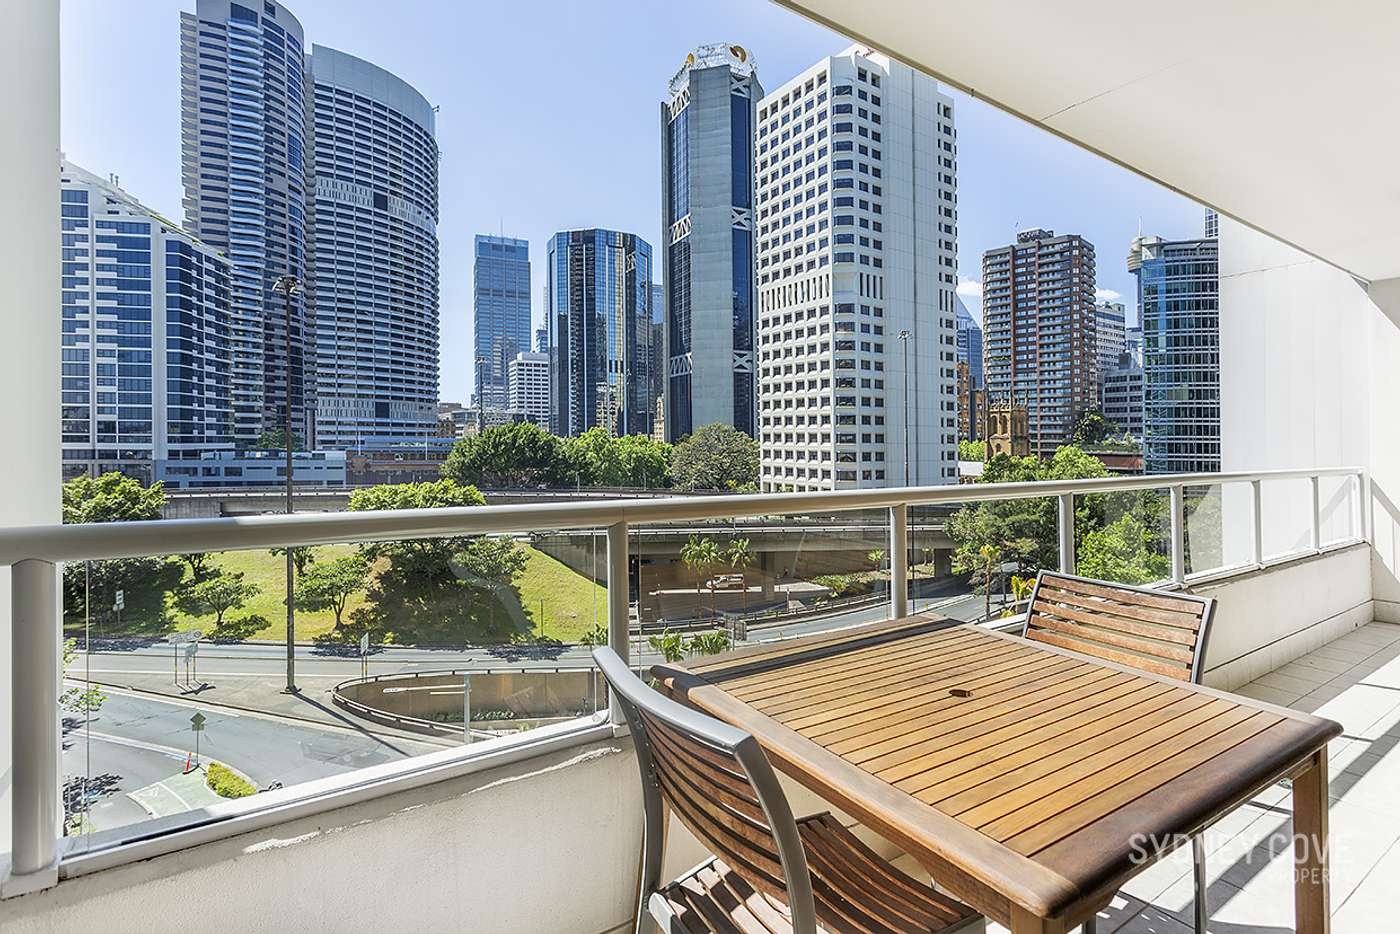 Main view of Homely apartment listing, 187 Kent Street, Sydney NSW 2000